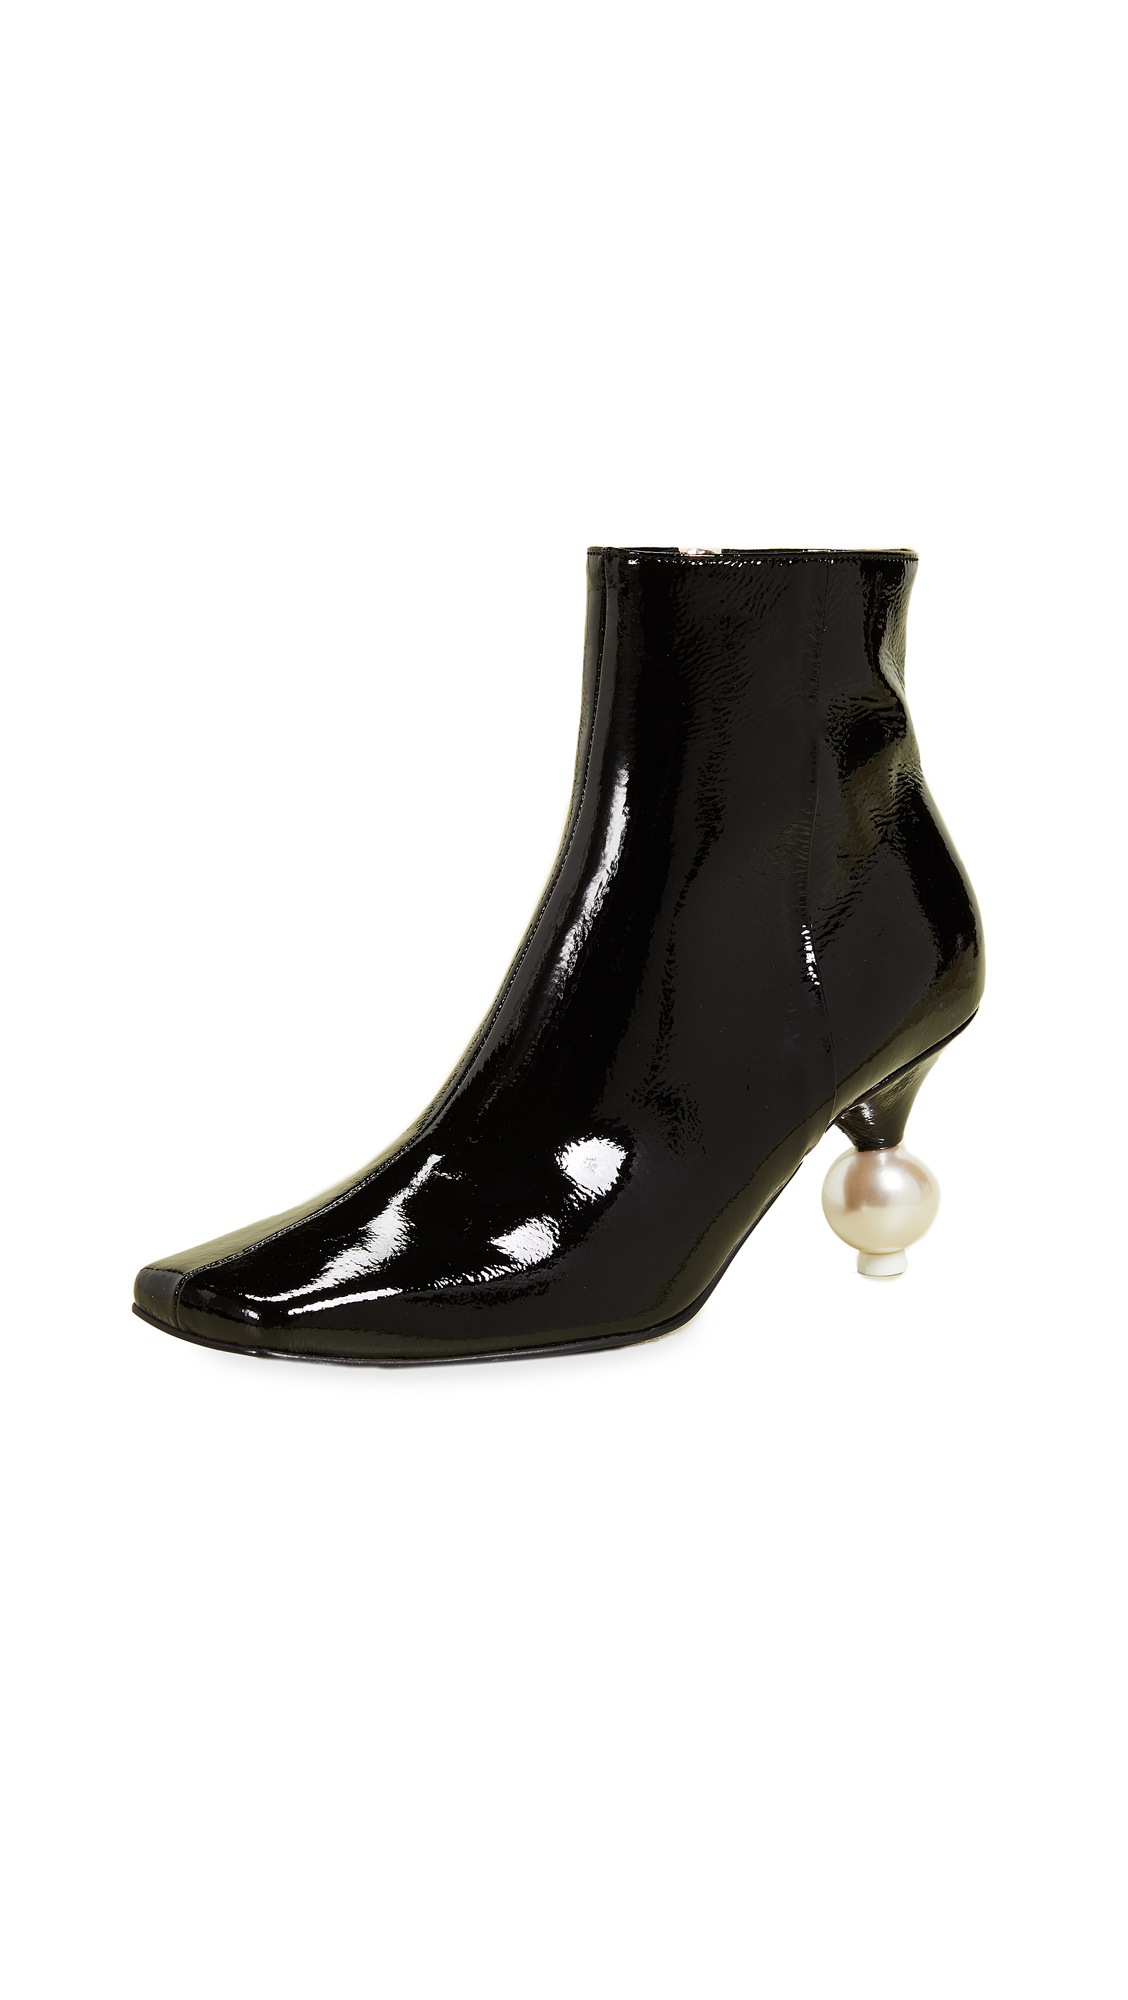 Yuul Yie Short Imitation Pearl Booties - Black